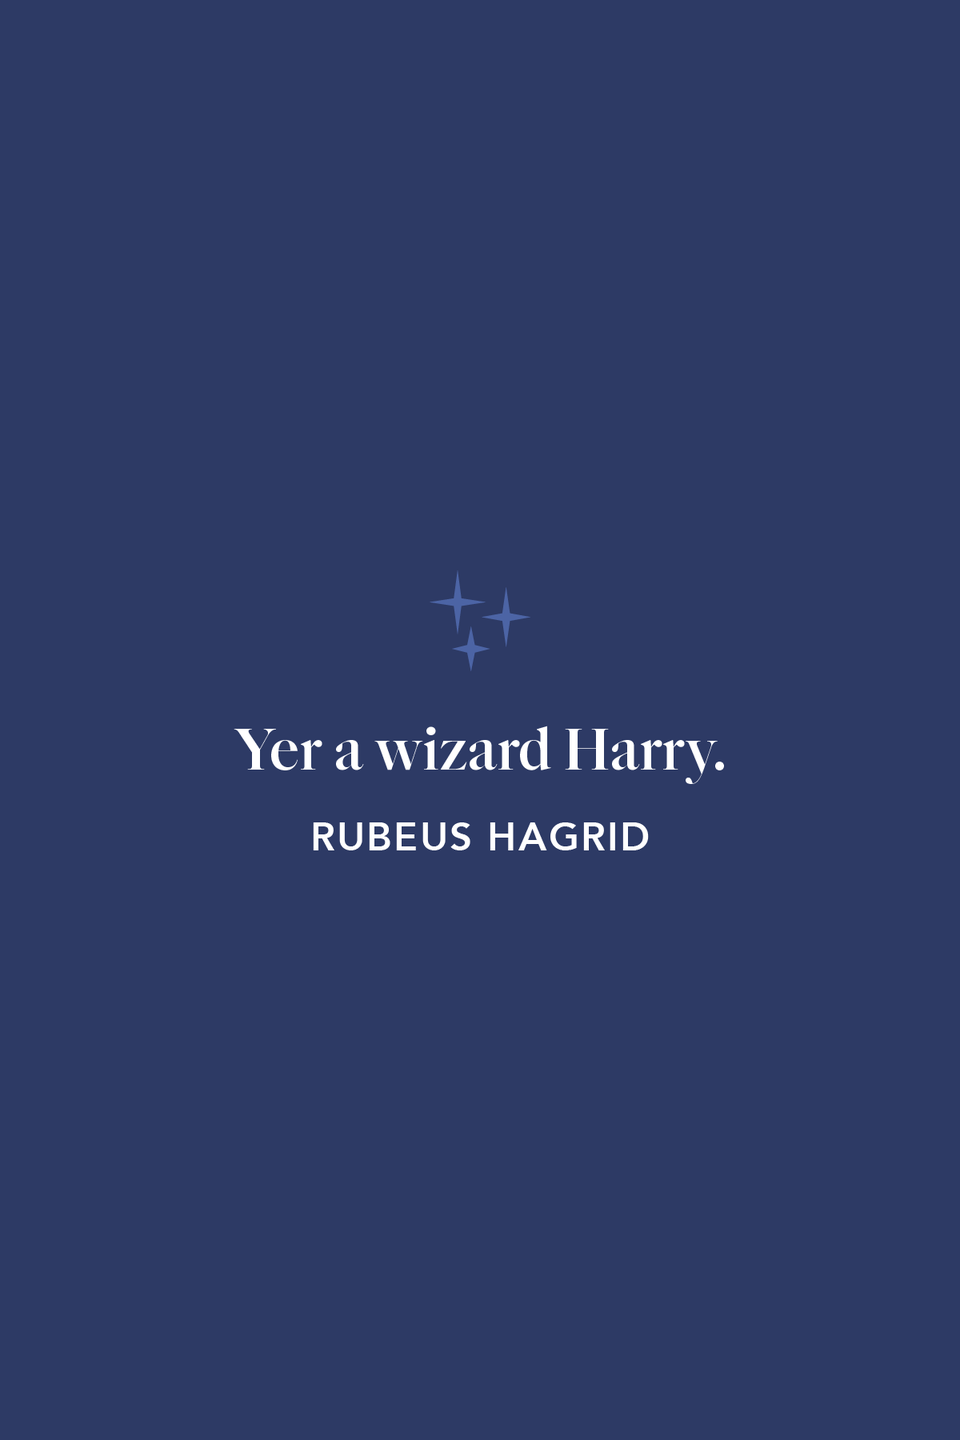 """<p>""""Yer a wizard Harry."""" With these words from Hagrid, Harry's world (and ours) officially changed forever, as he was introduced to the magical world in <em>The Sorcerer's Stone</em>.</p>"""